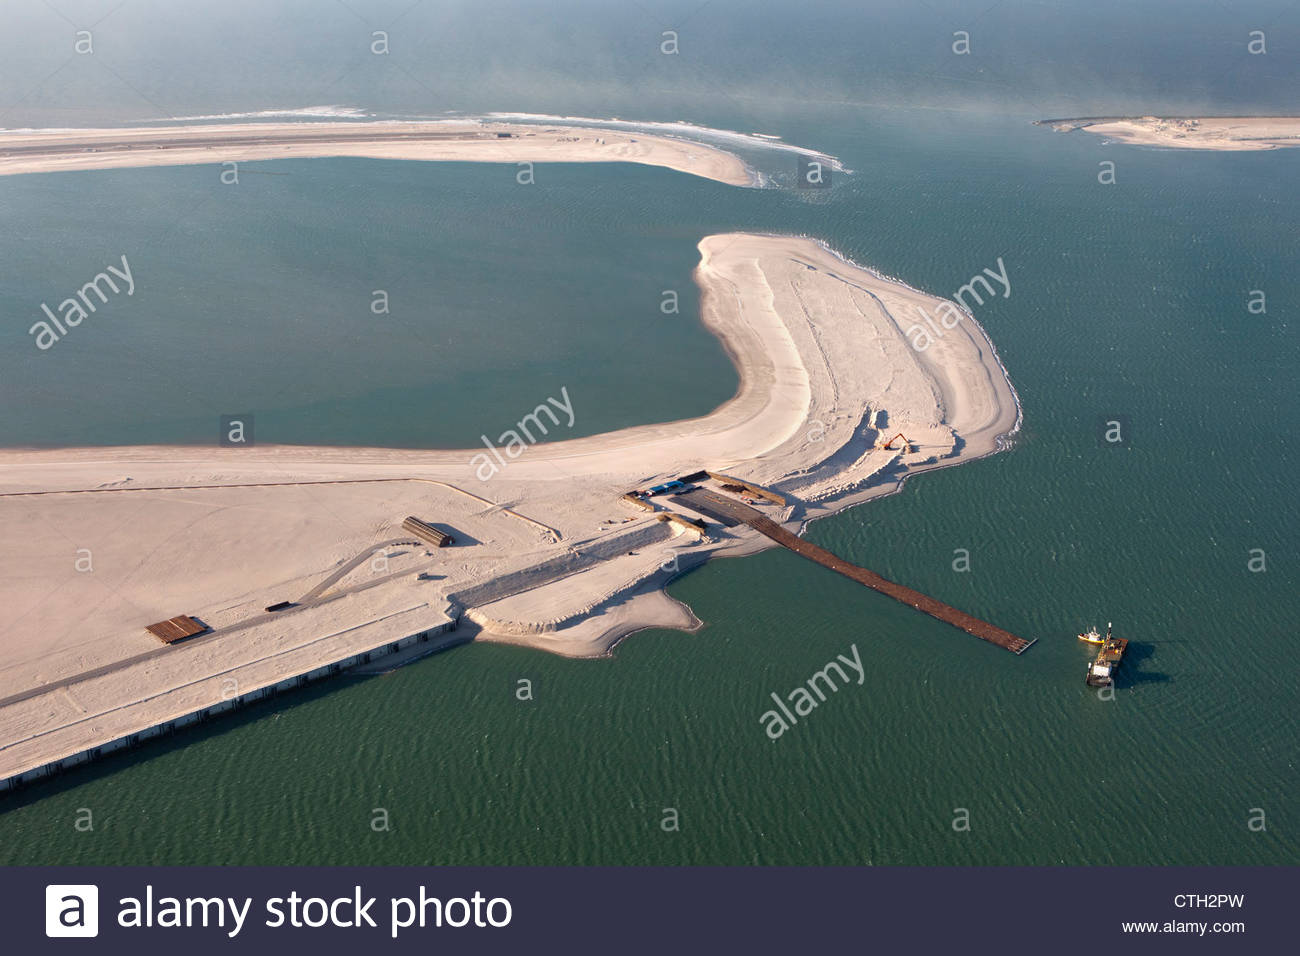 The Netherlands, Rotterdam, Port expansion by claiming land from the sea. Project called Maasvlakte 2. Aerial. - Stock Image